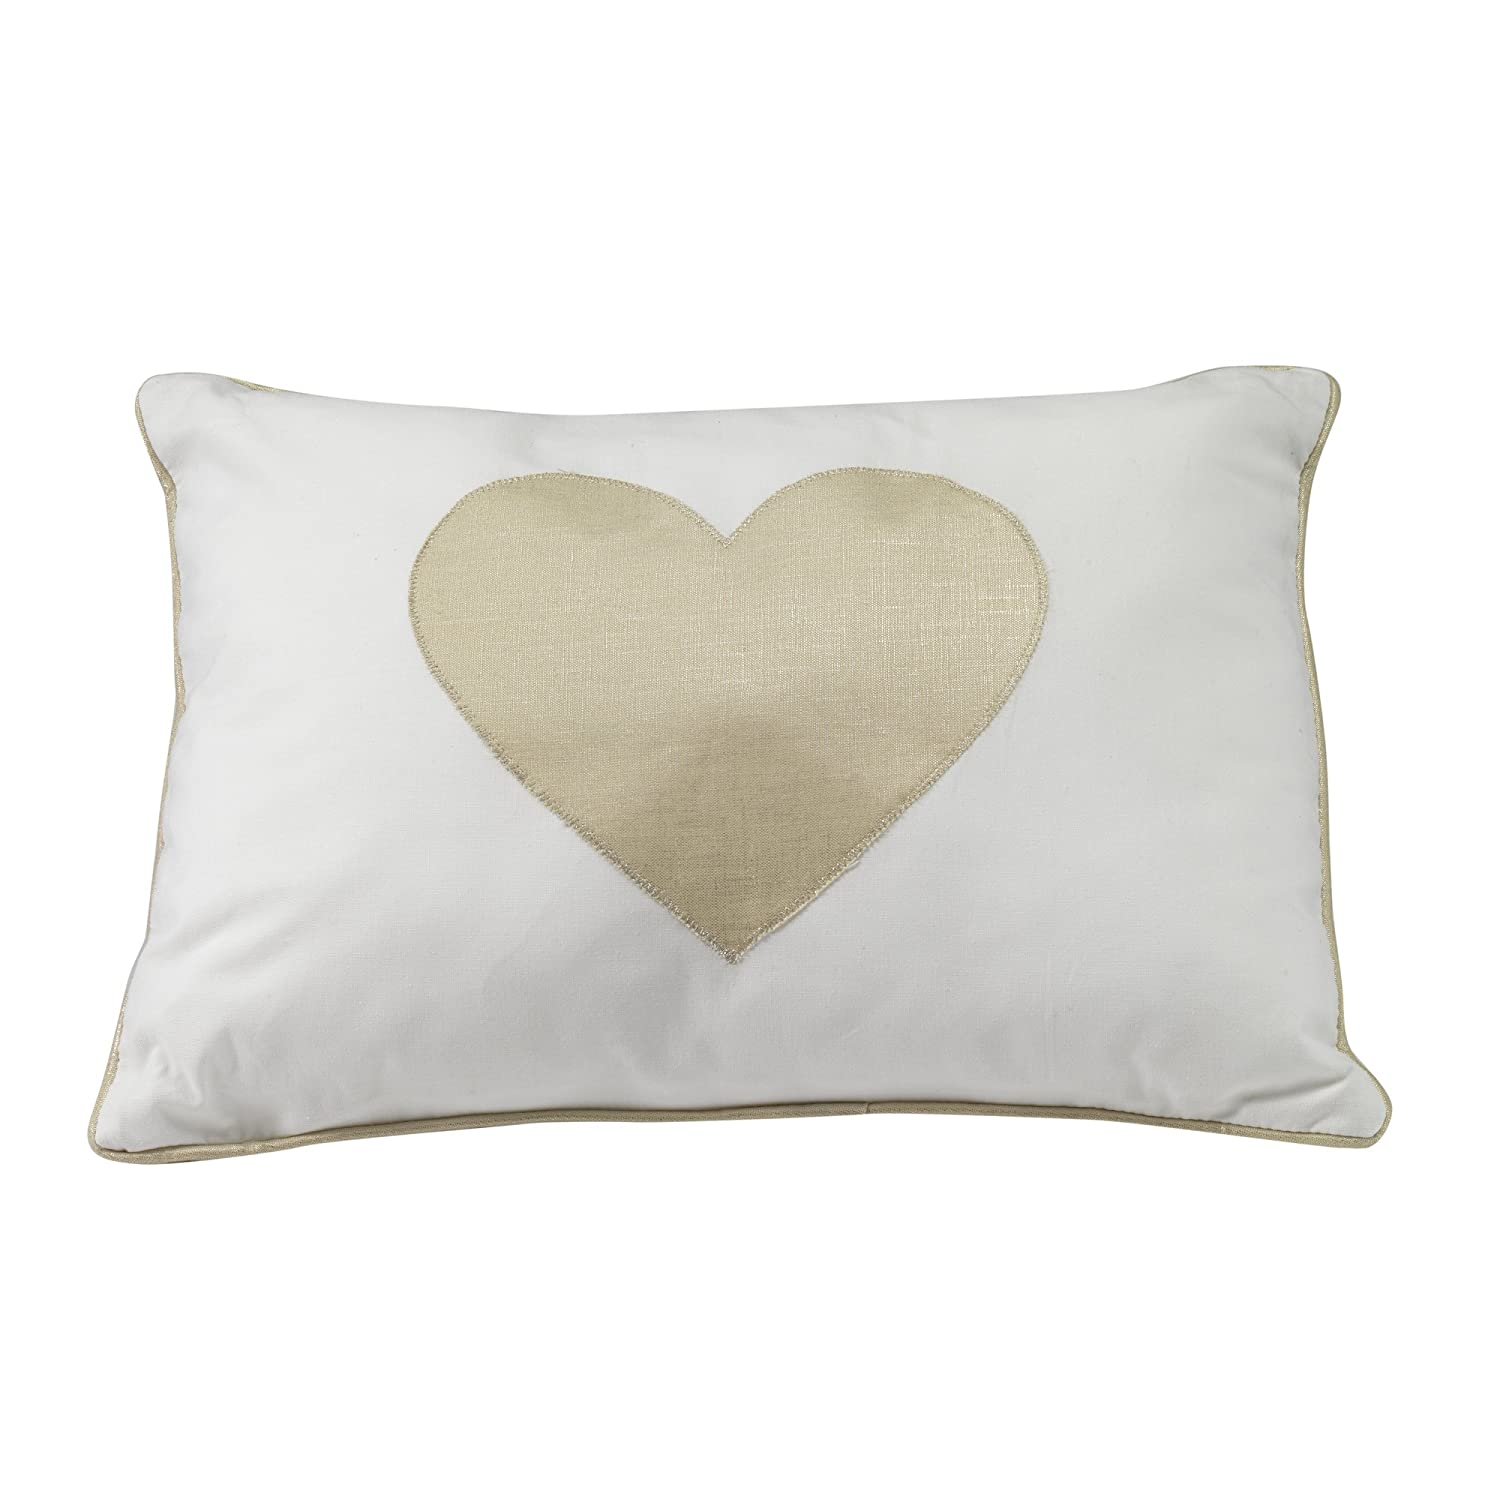 Lambs & Ivy Dawn Pillow 595003